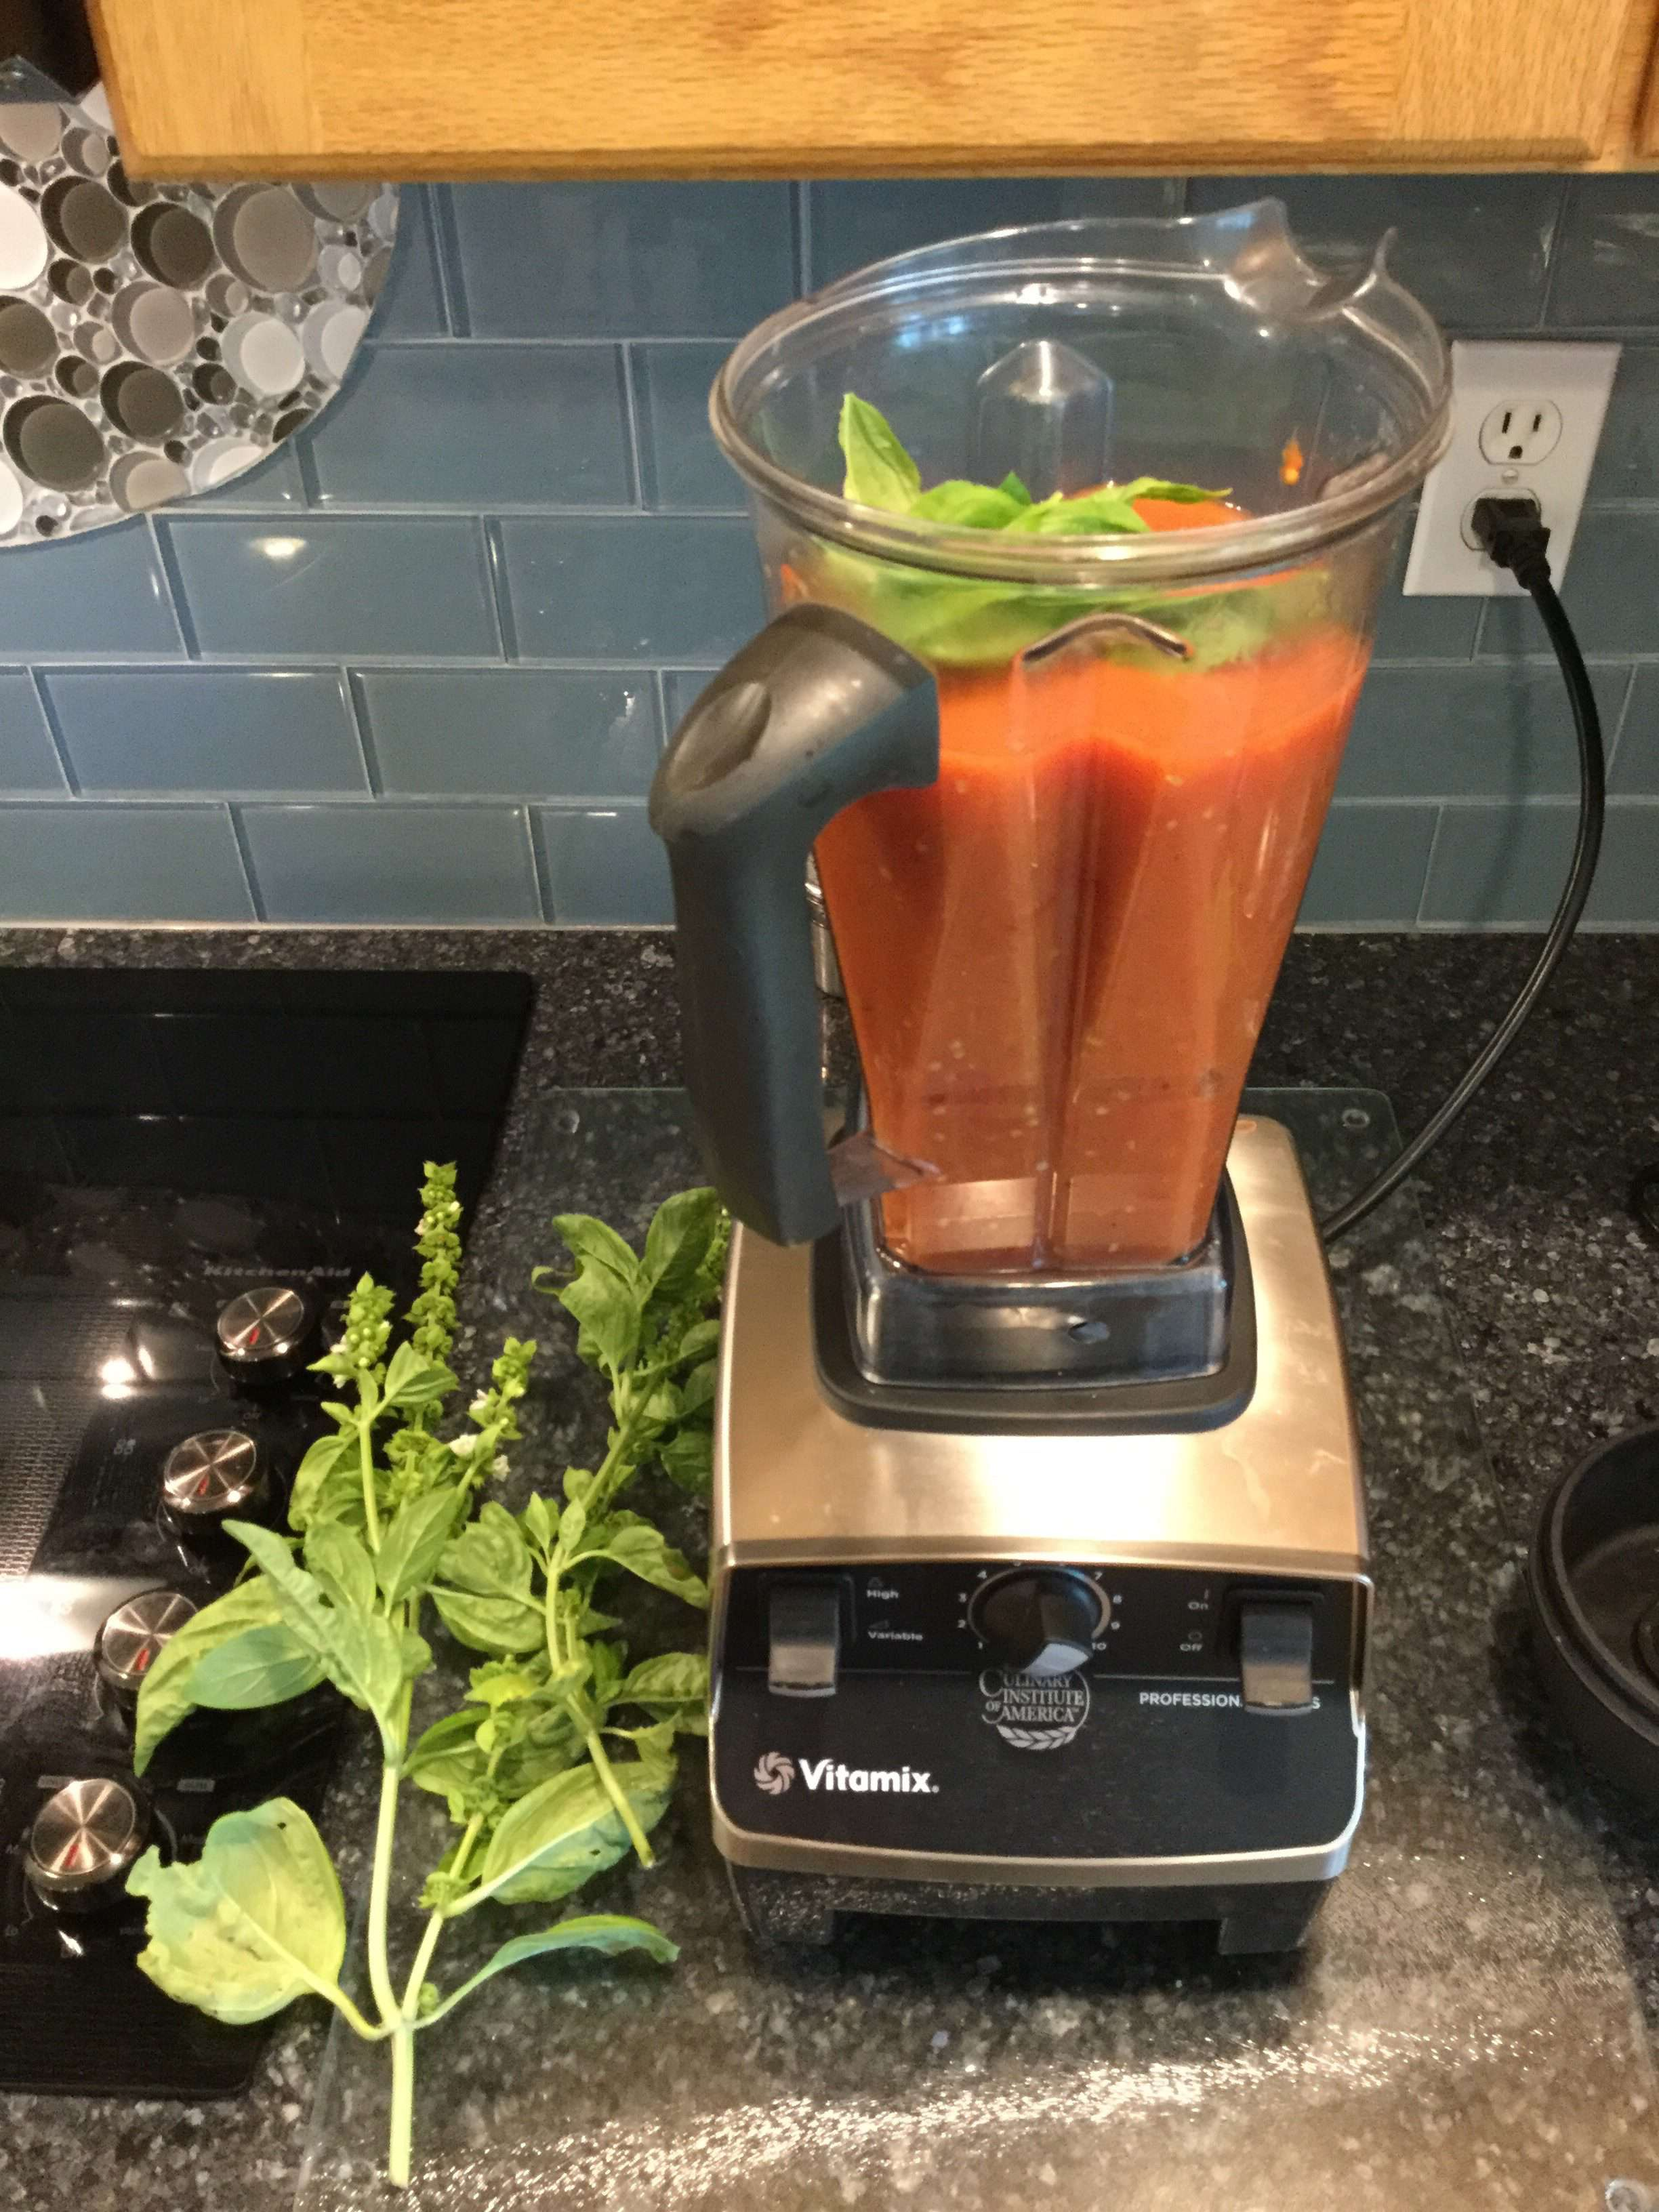 Place the tomatoes in a blender and add fresh basil leaves. Add as many or as few as you like. The more you add, the stronger the basil flavor.